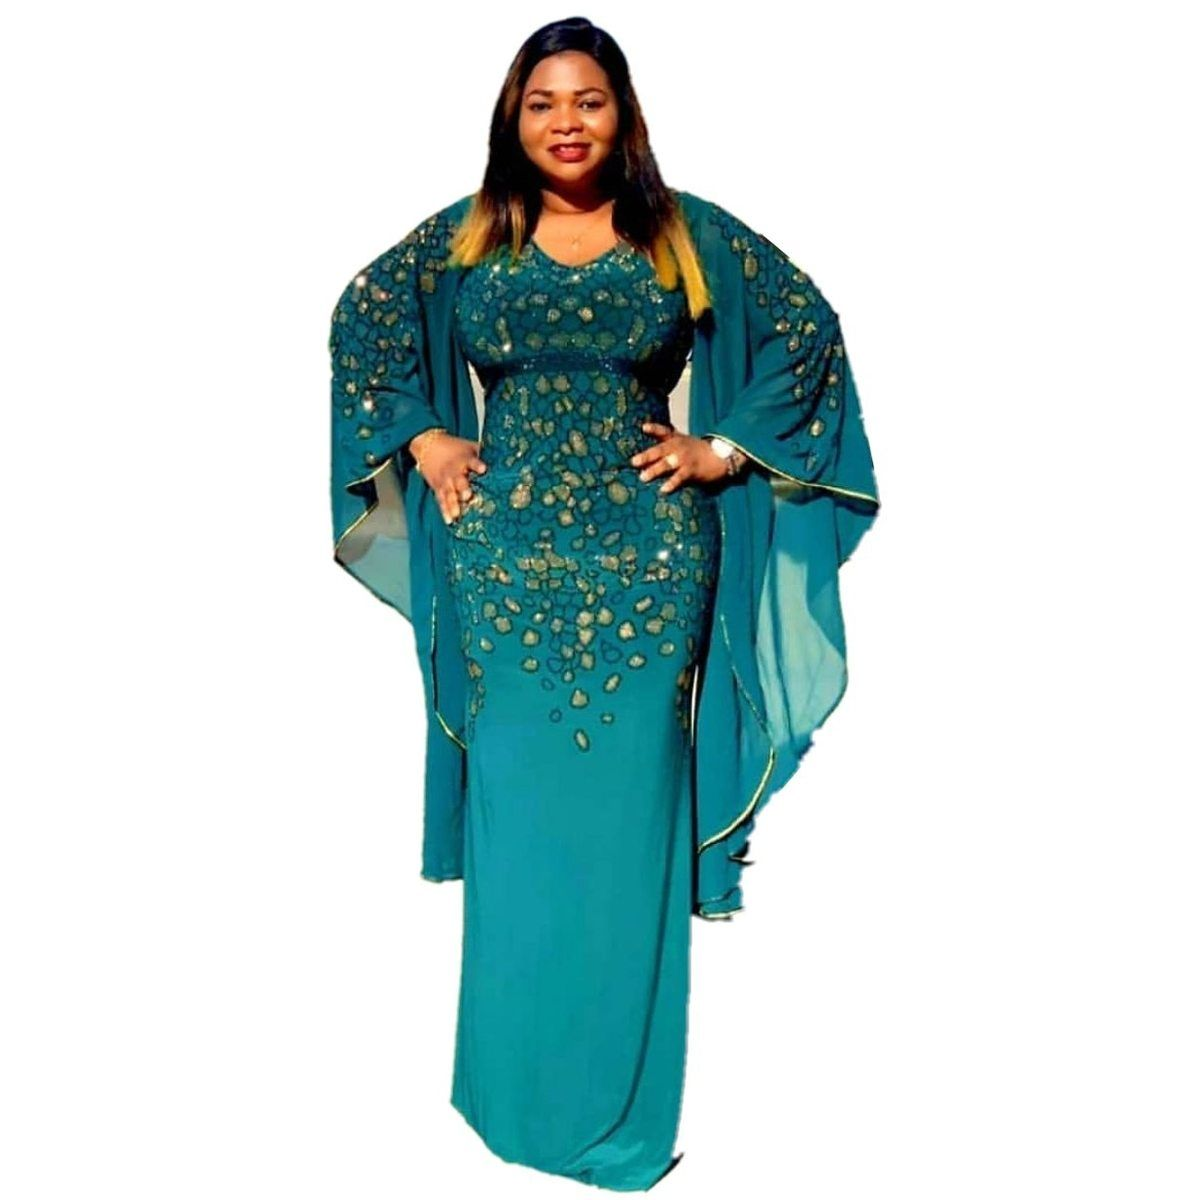 African Dresses For Women Robe Africaine 2019 African Clothing Dashiki Fashion Cloth Long Maxi Dress Africa Clothing